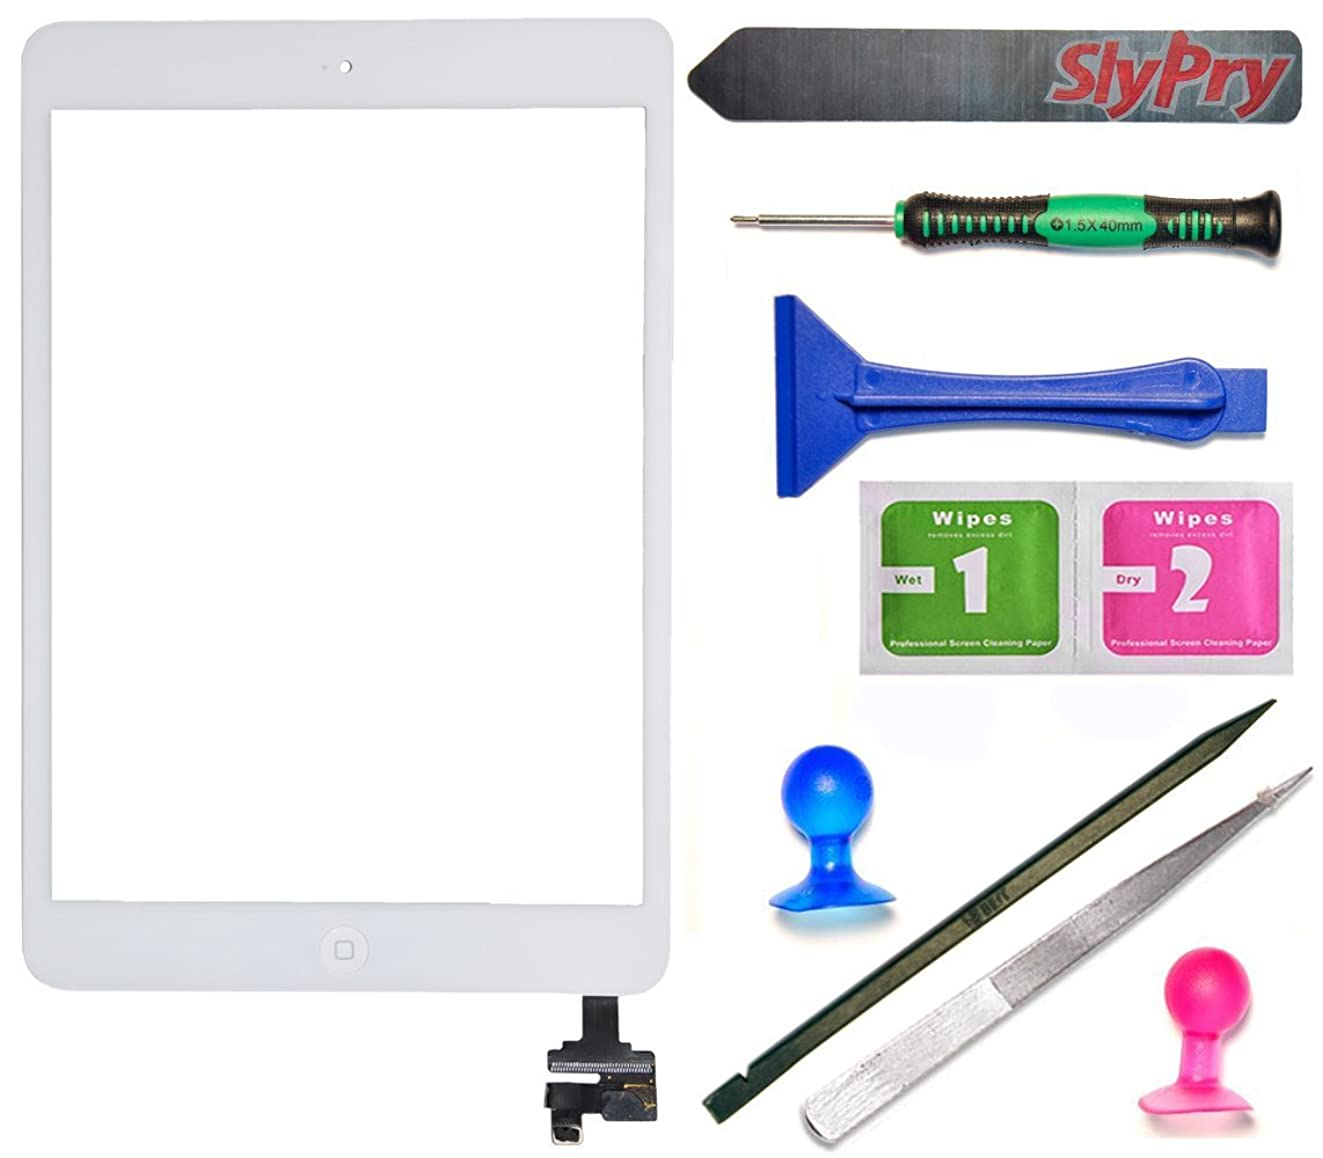 Prokit For White iPad Mini Touch Screen Digitizer Complete Assembly with IC Chip & Home Button replacement with SlyPry opening tool kit Ships from CA USA